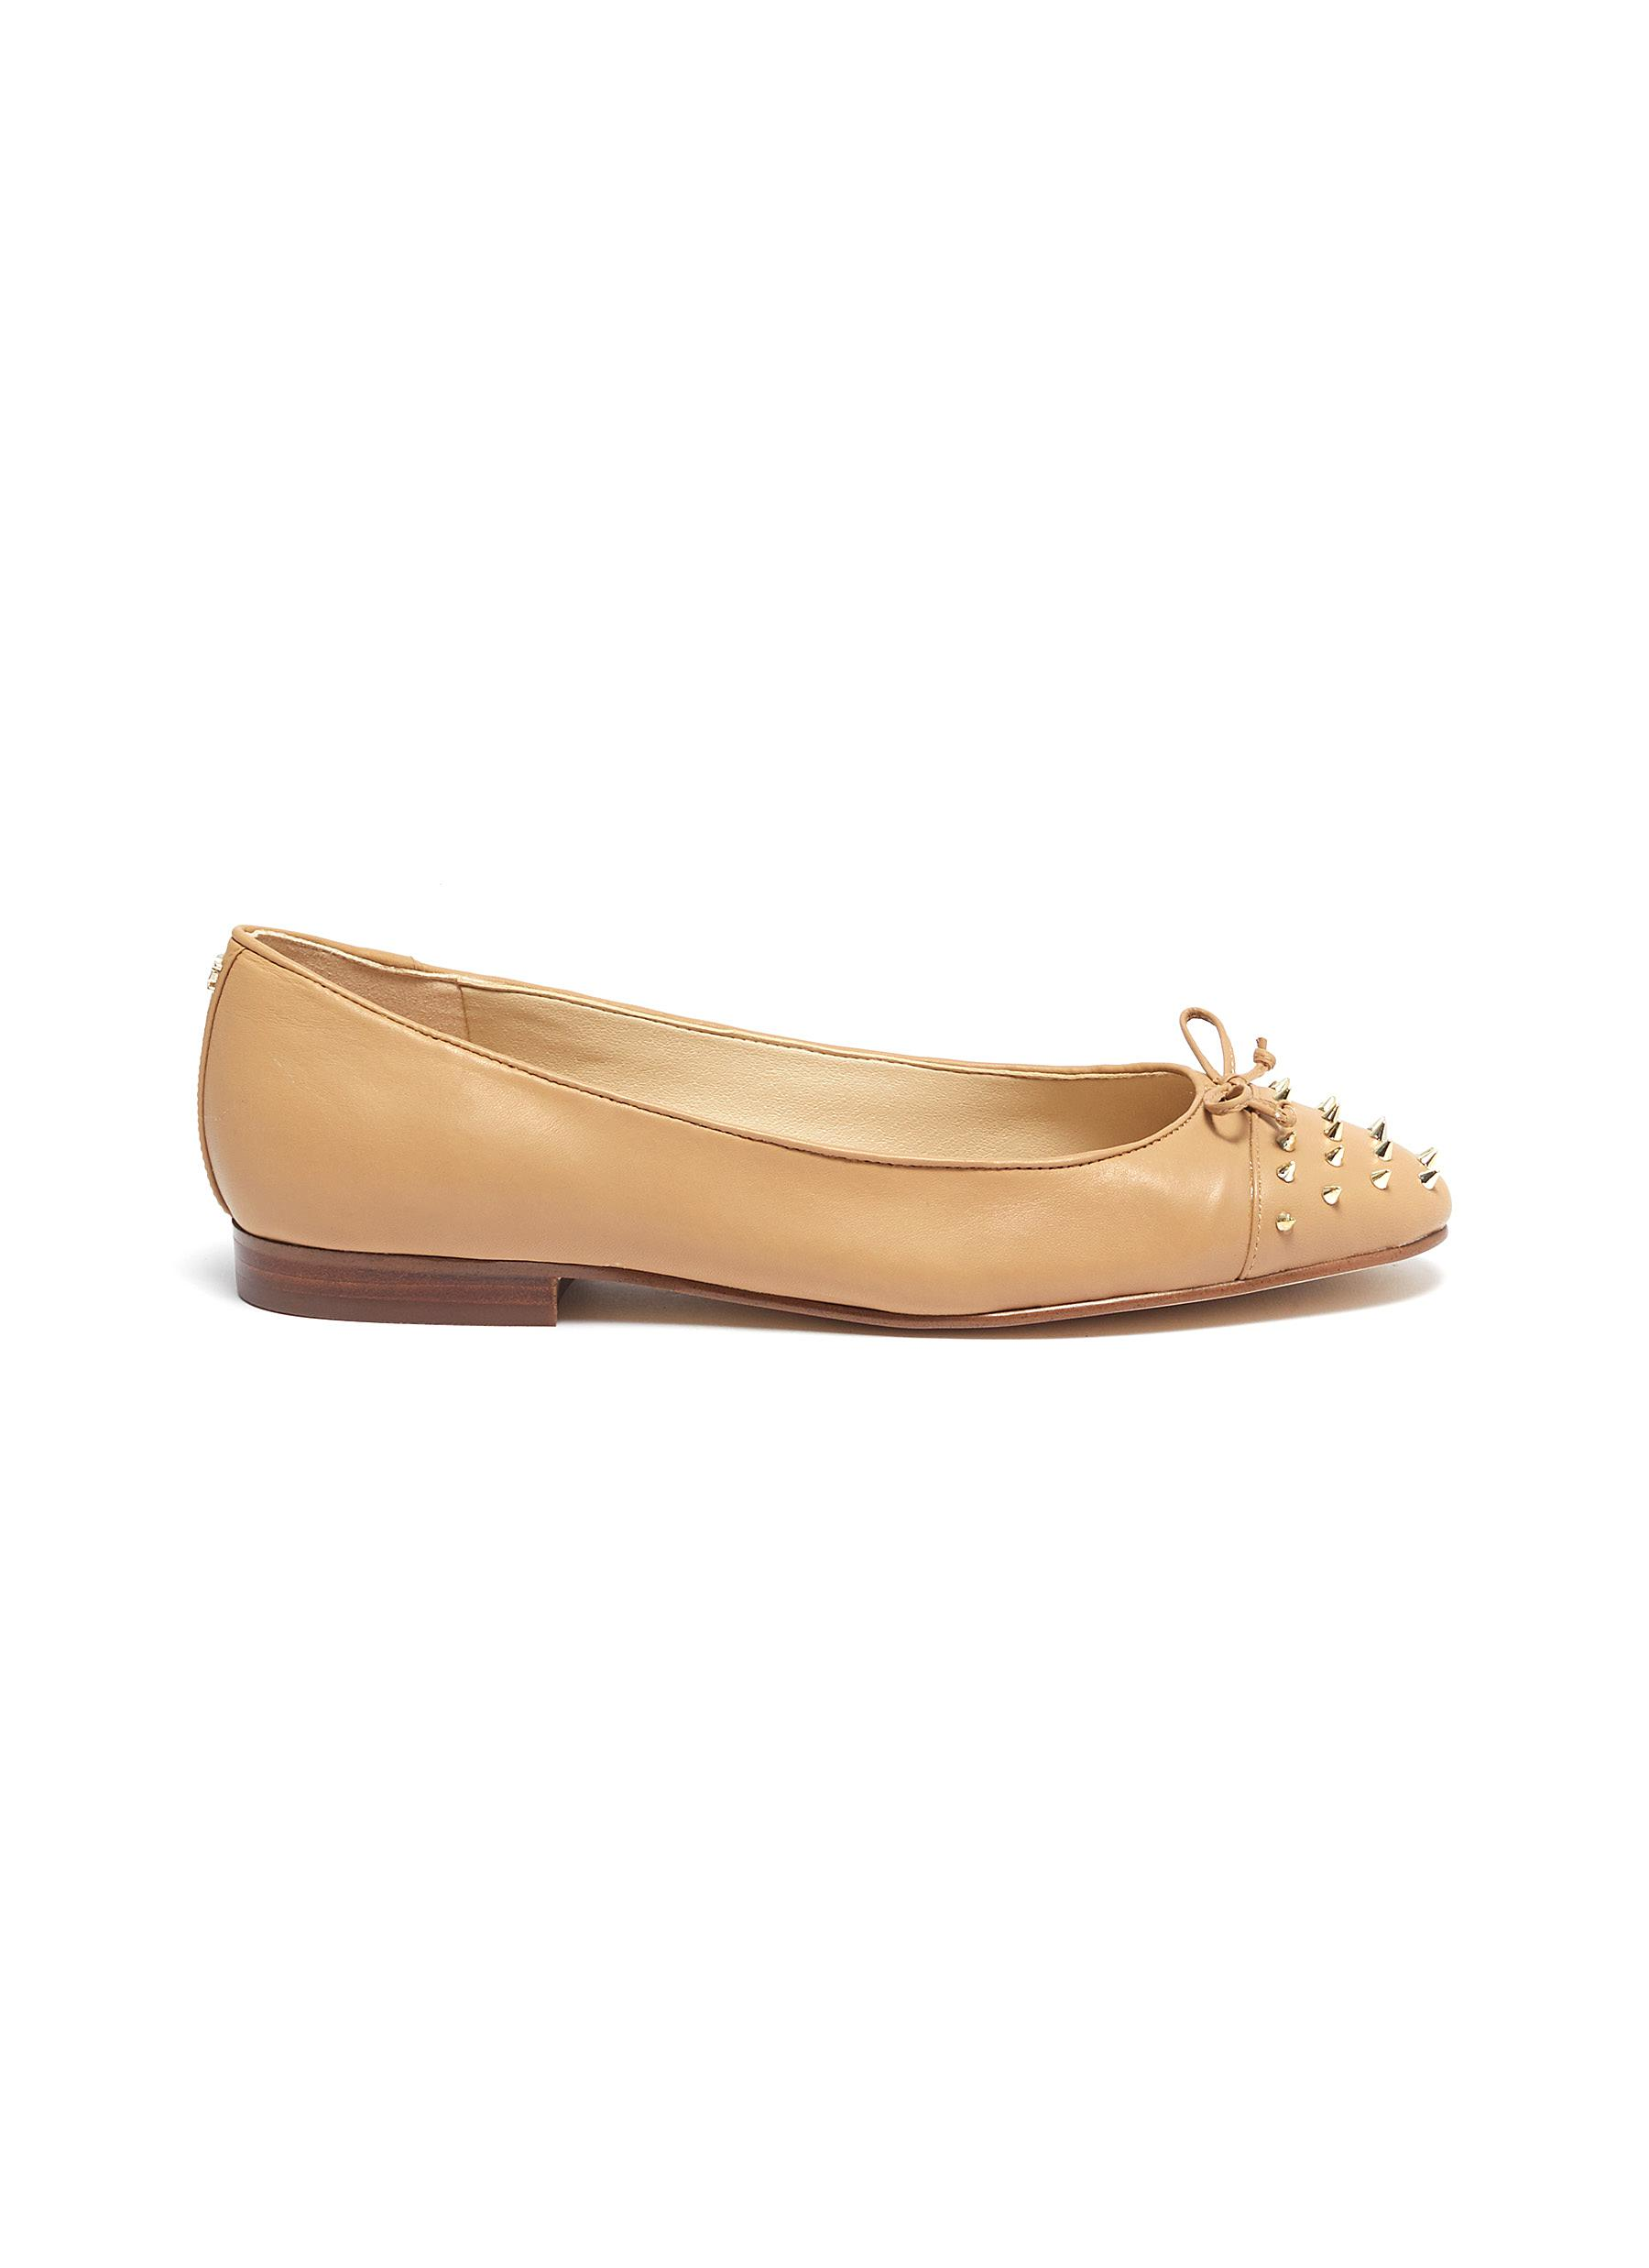 Mirna stud toe leather ballet flats by Sam Edelman